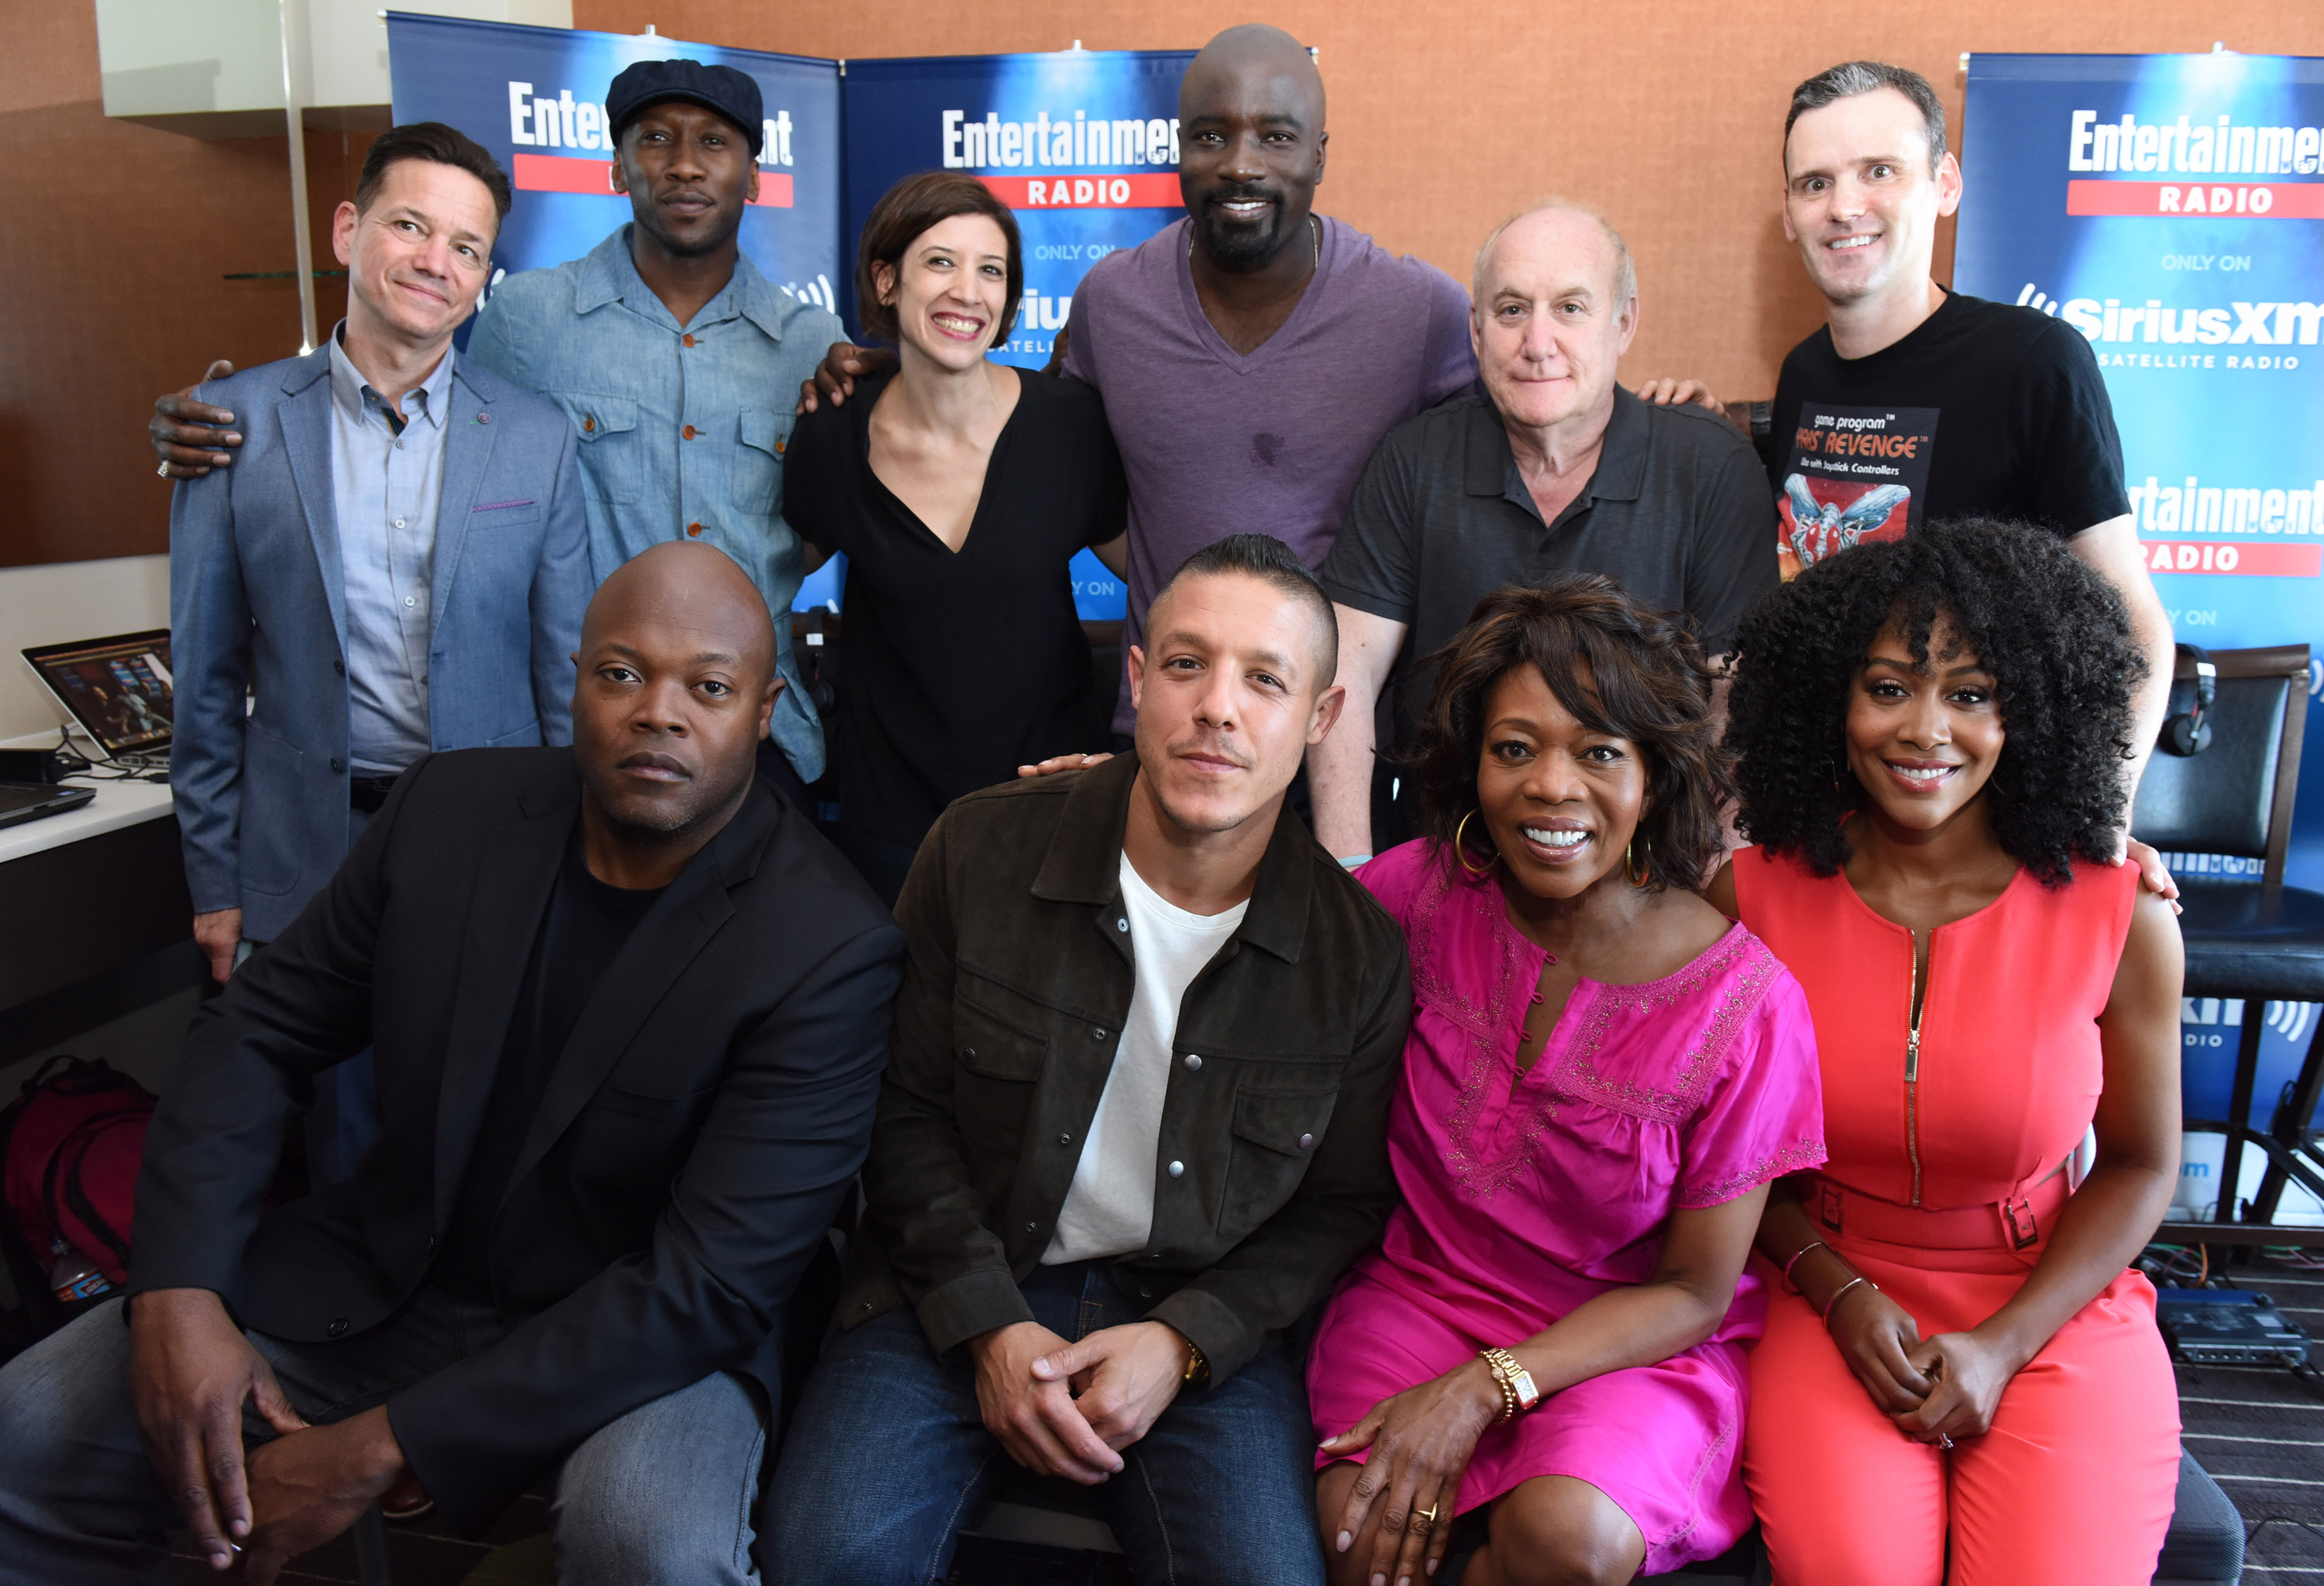 Luke Cage already has an incredible principle cast - but look out for some awesome guest spots (Picture: Vivien Killilea/Getty Images for SiriusXM)